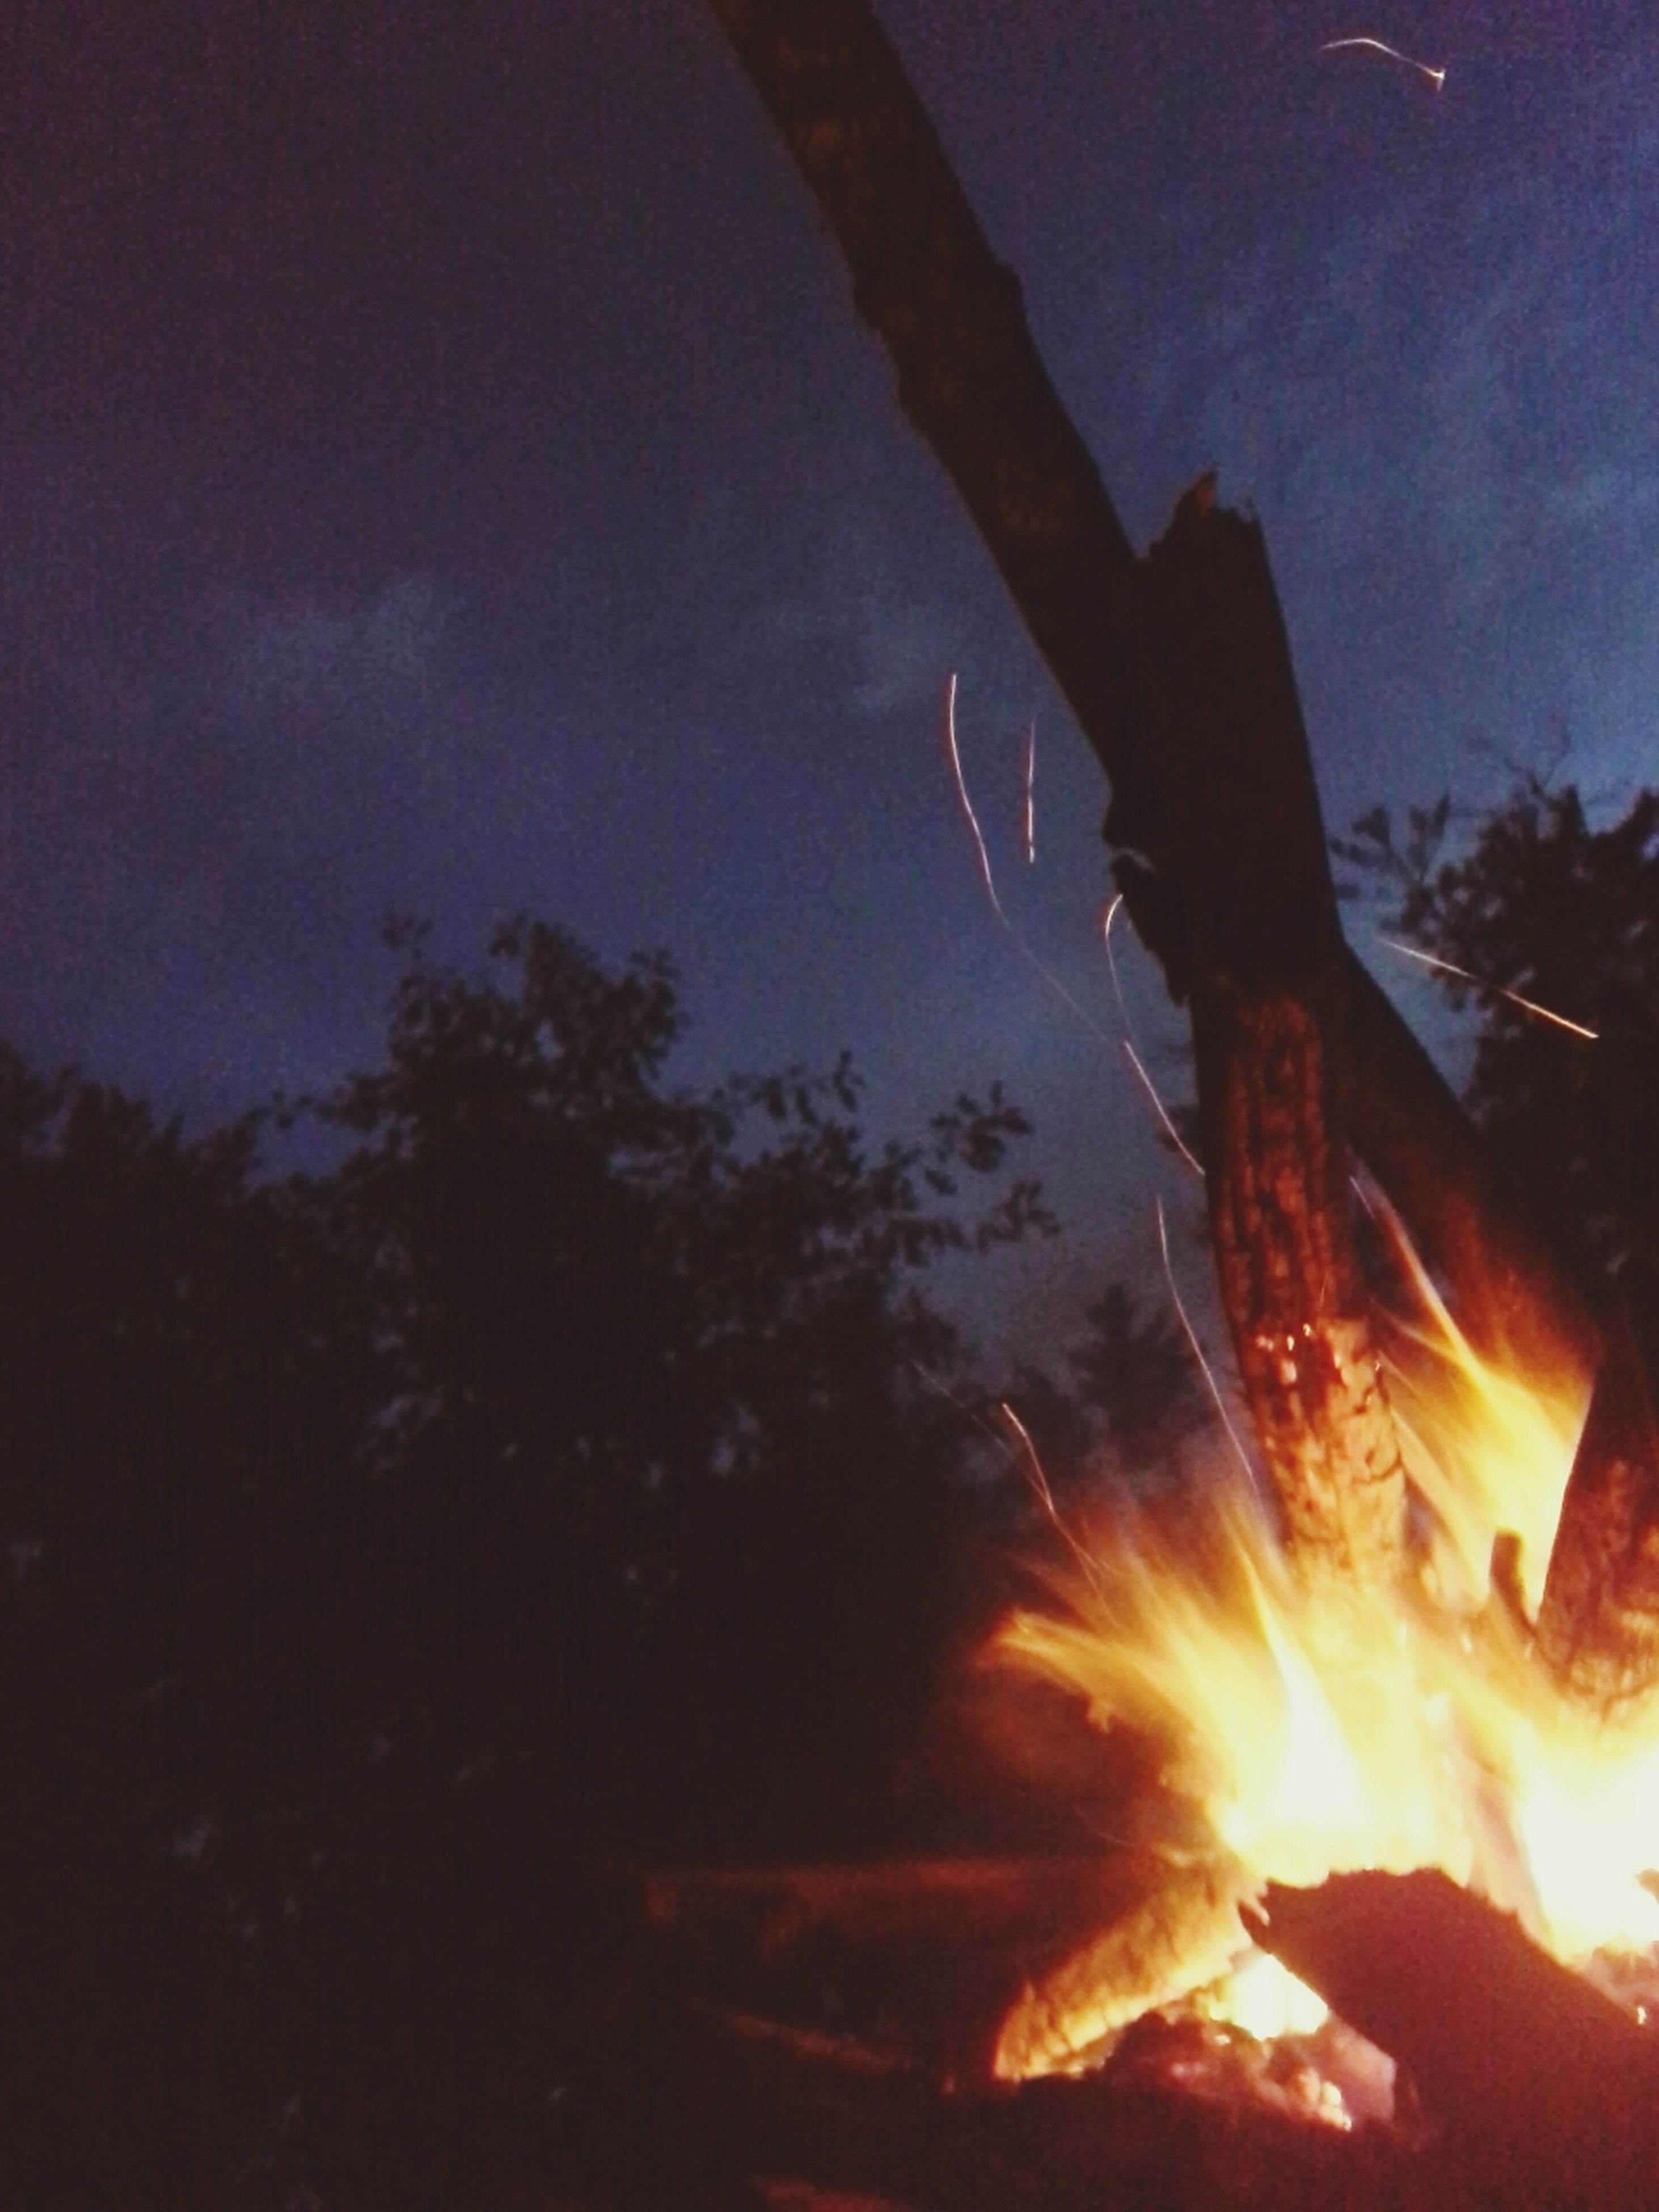 fire - natural phenomenon, burning, flame, night, heat - temperature, bonfire, glowing, illuminated, fire, sky, silhouette, campfire, smoke - physical structure, orange color, low angle view, dark, tree, outdoors, heat, motion